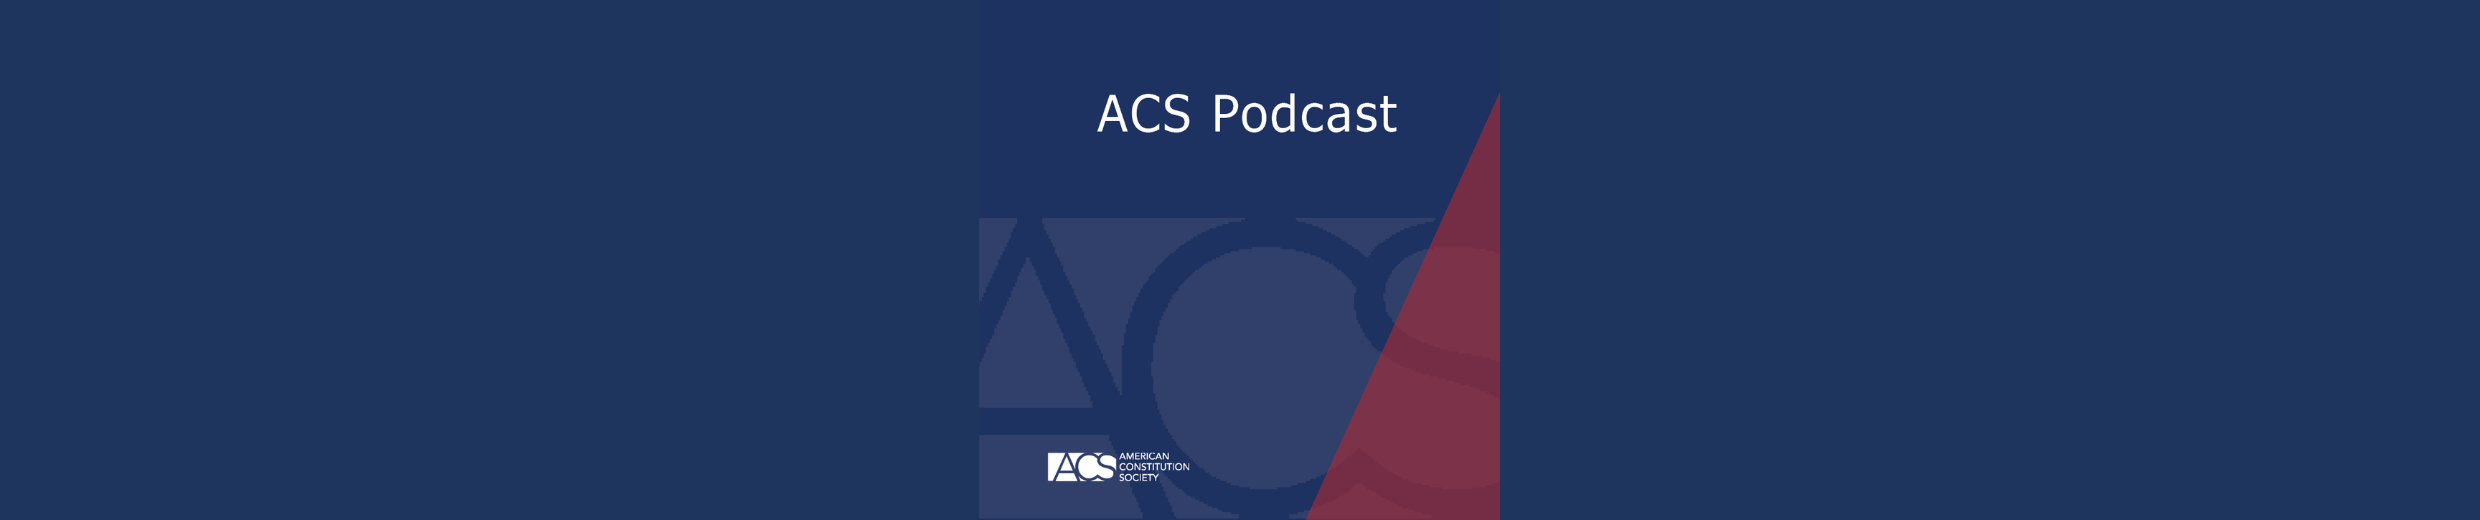 ACS Podcast featured image